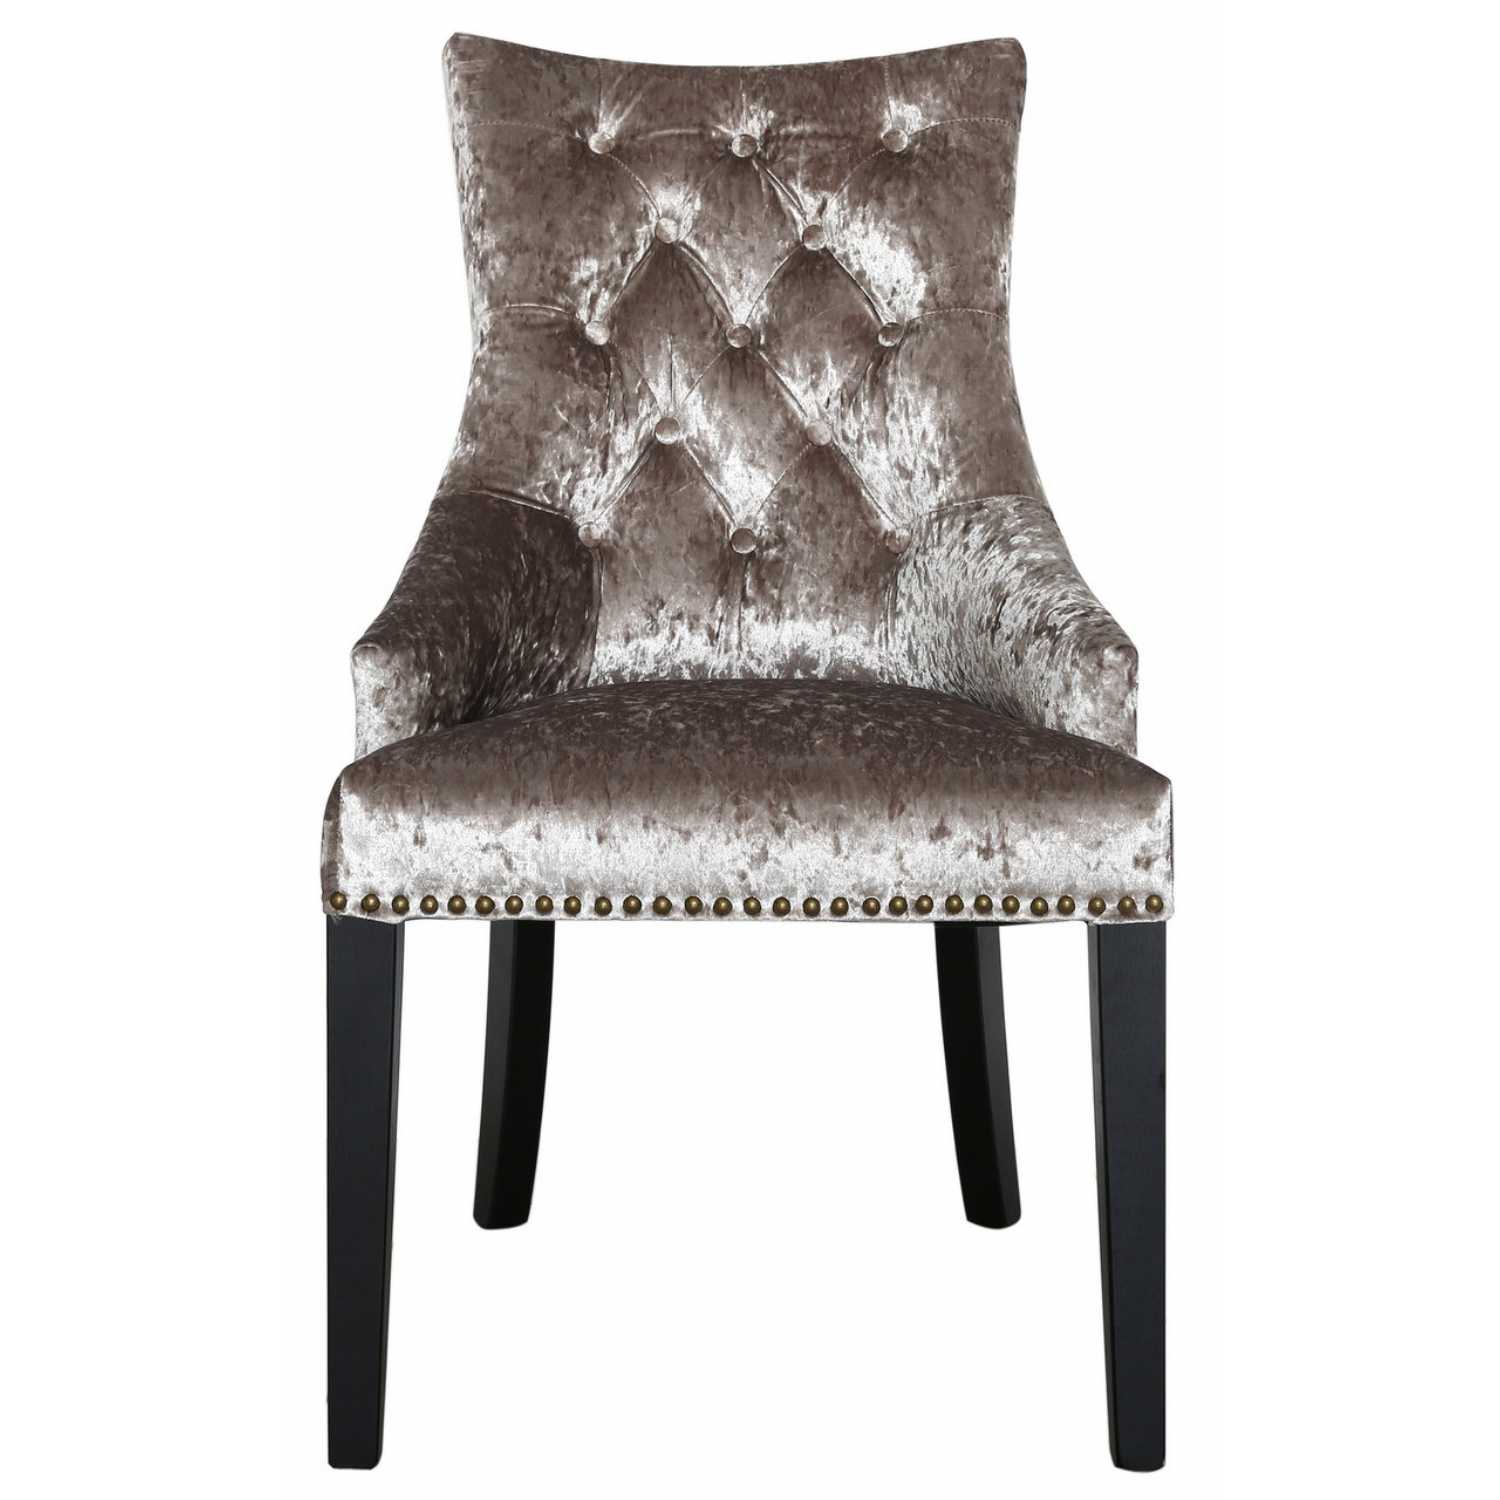 Modern Champagne Crushed Velvet Dining Chair With Knocker Back